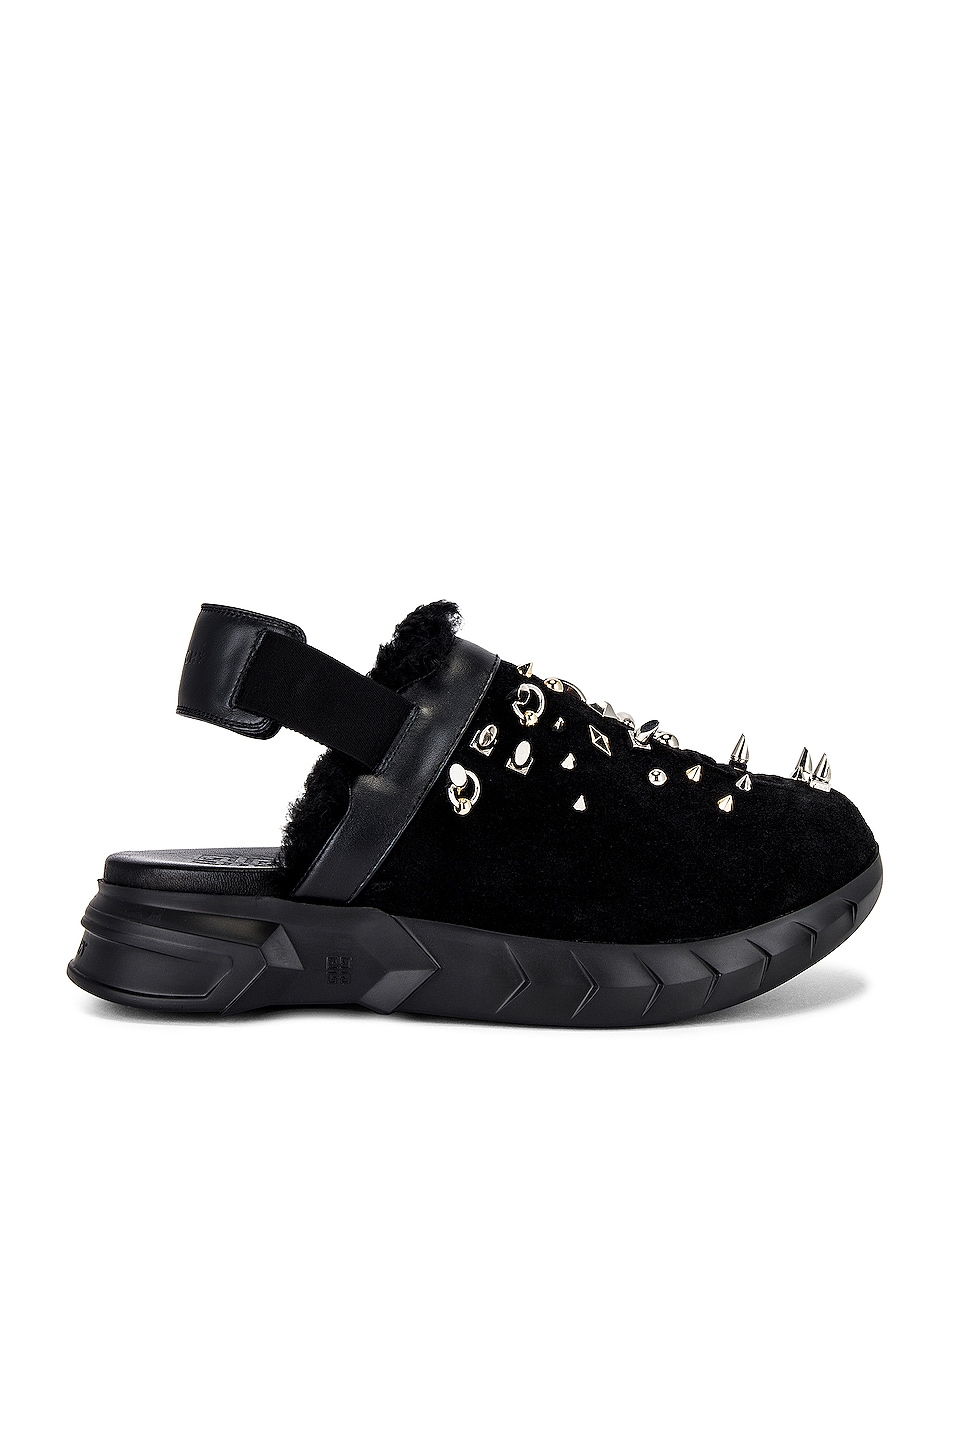 Image 1 of Givenchy Marshmallow Sling Back Clog in Black